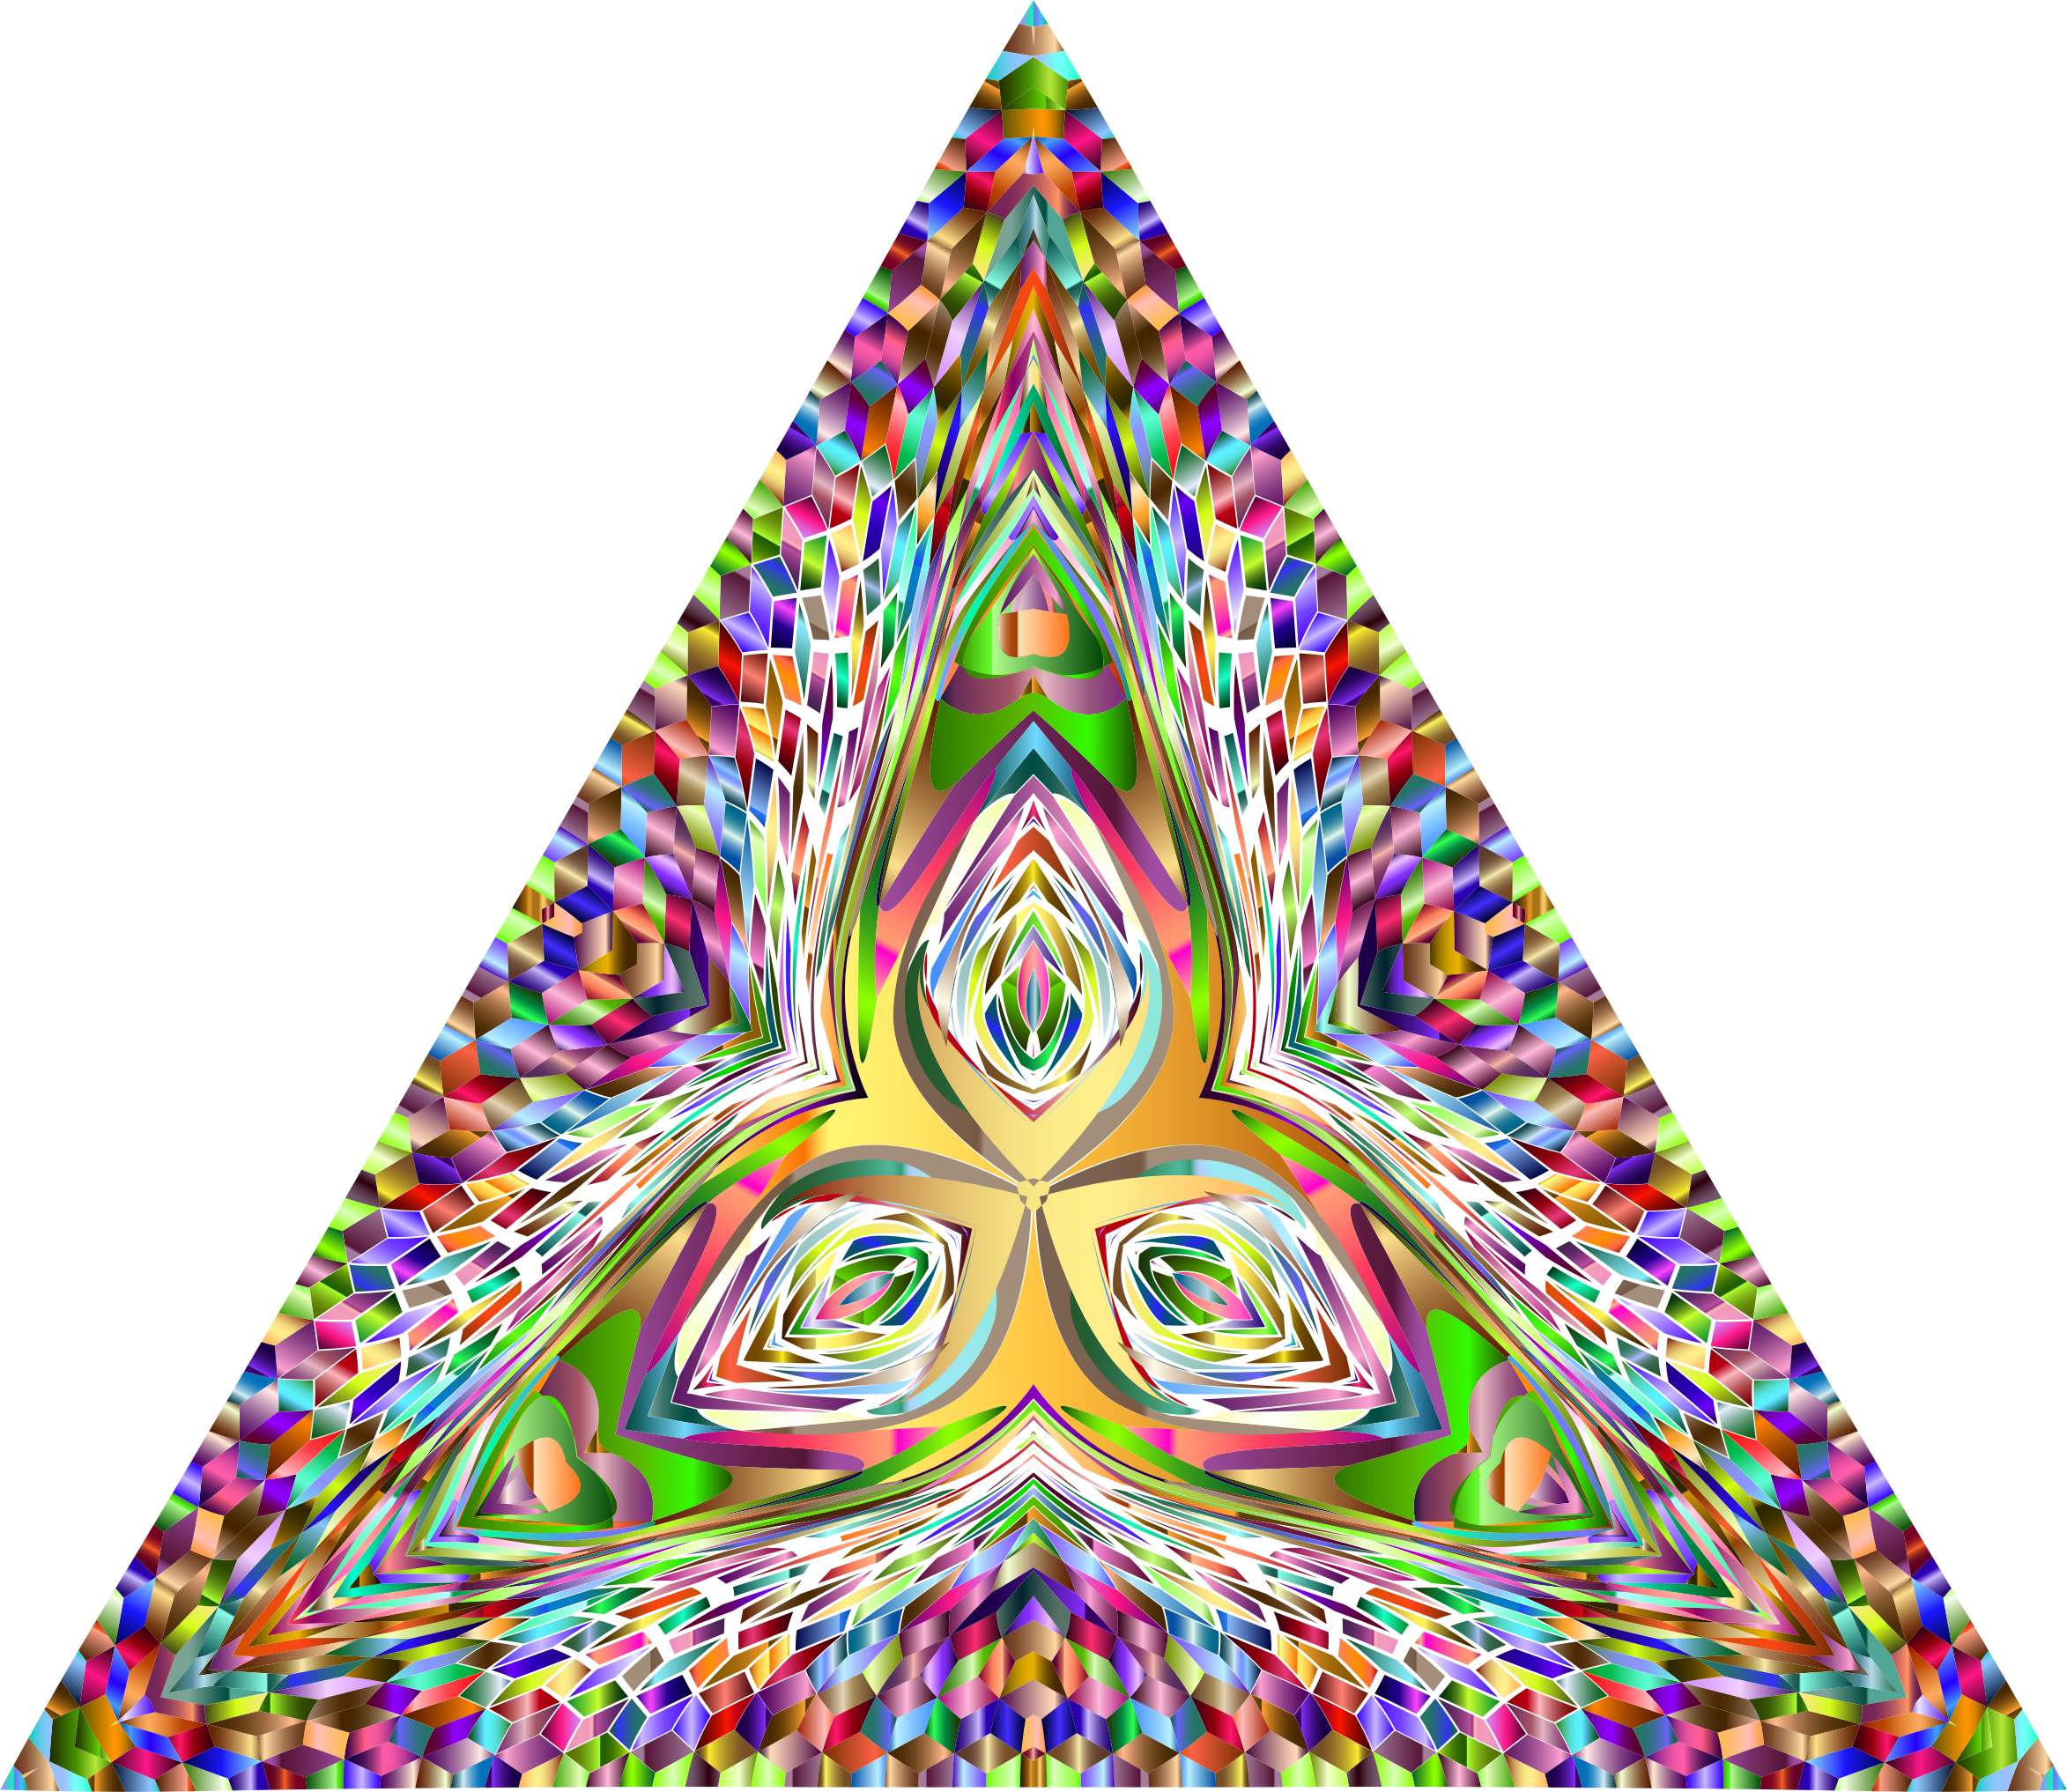 Chromatic Triad by GDJ